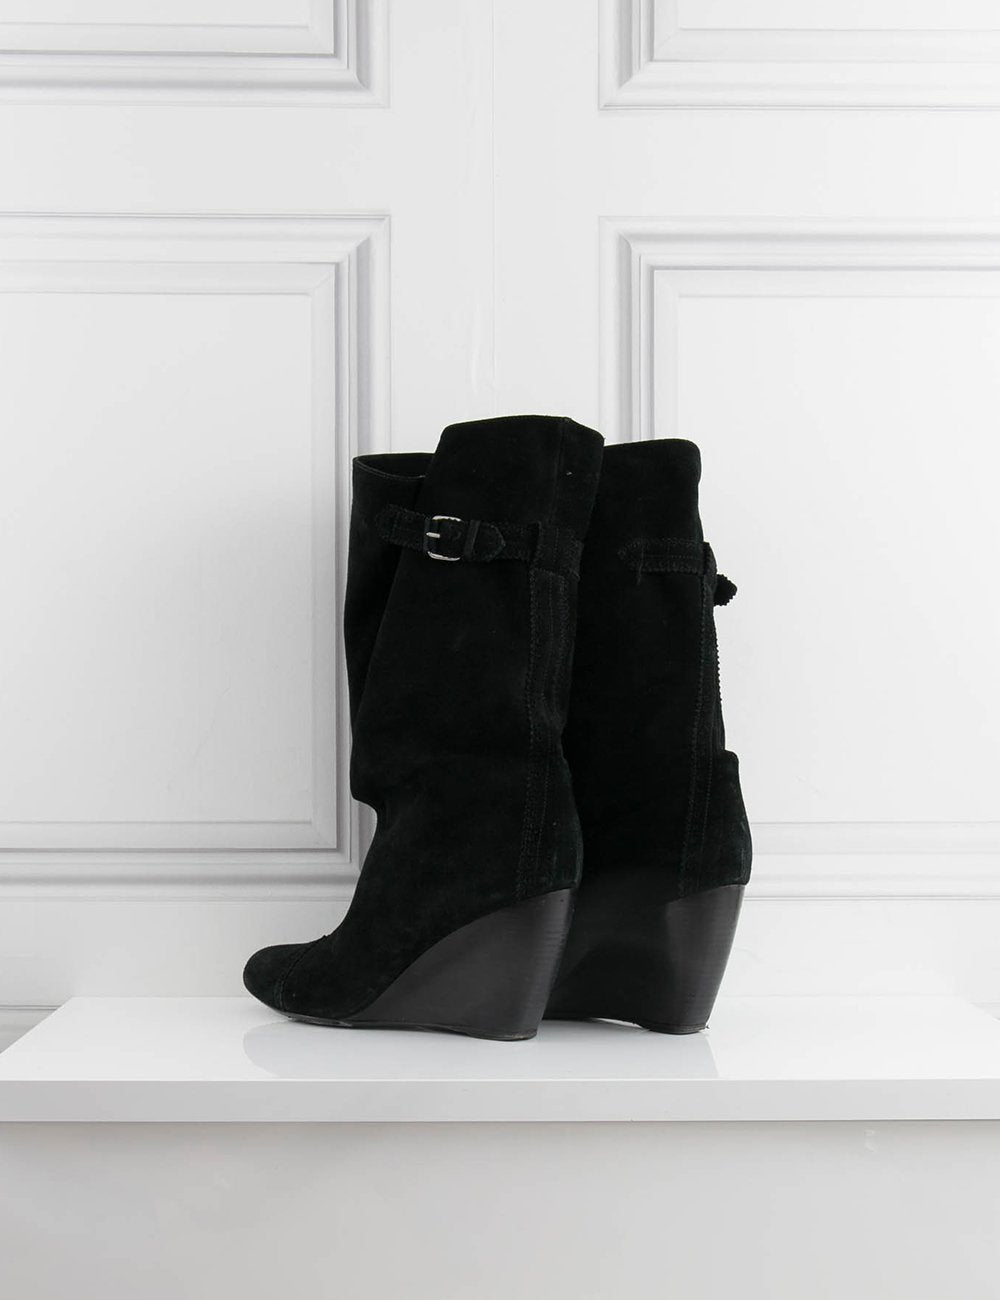 BALENCIAGA SHOES Mid-length boots in suede